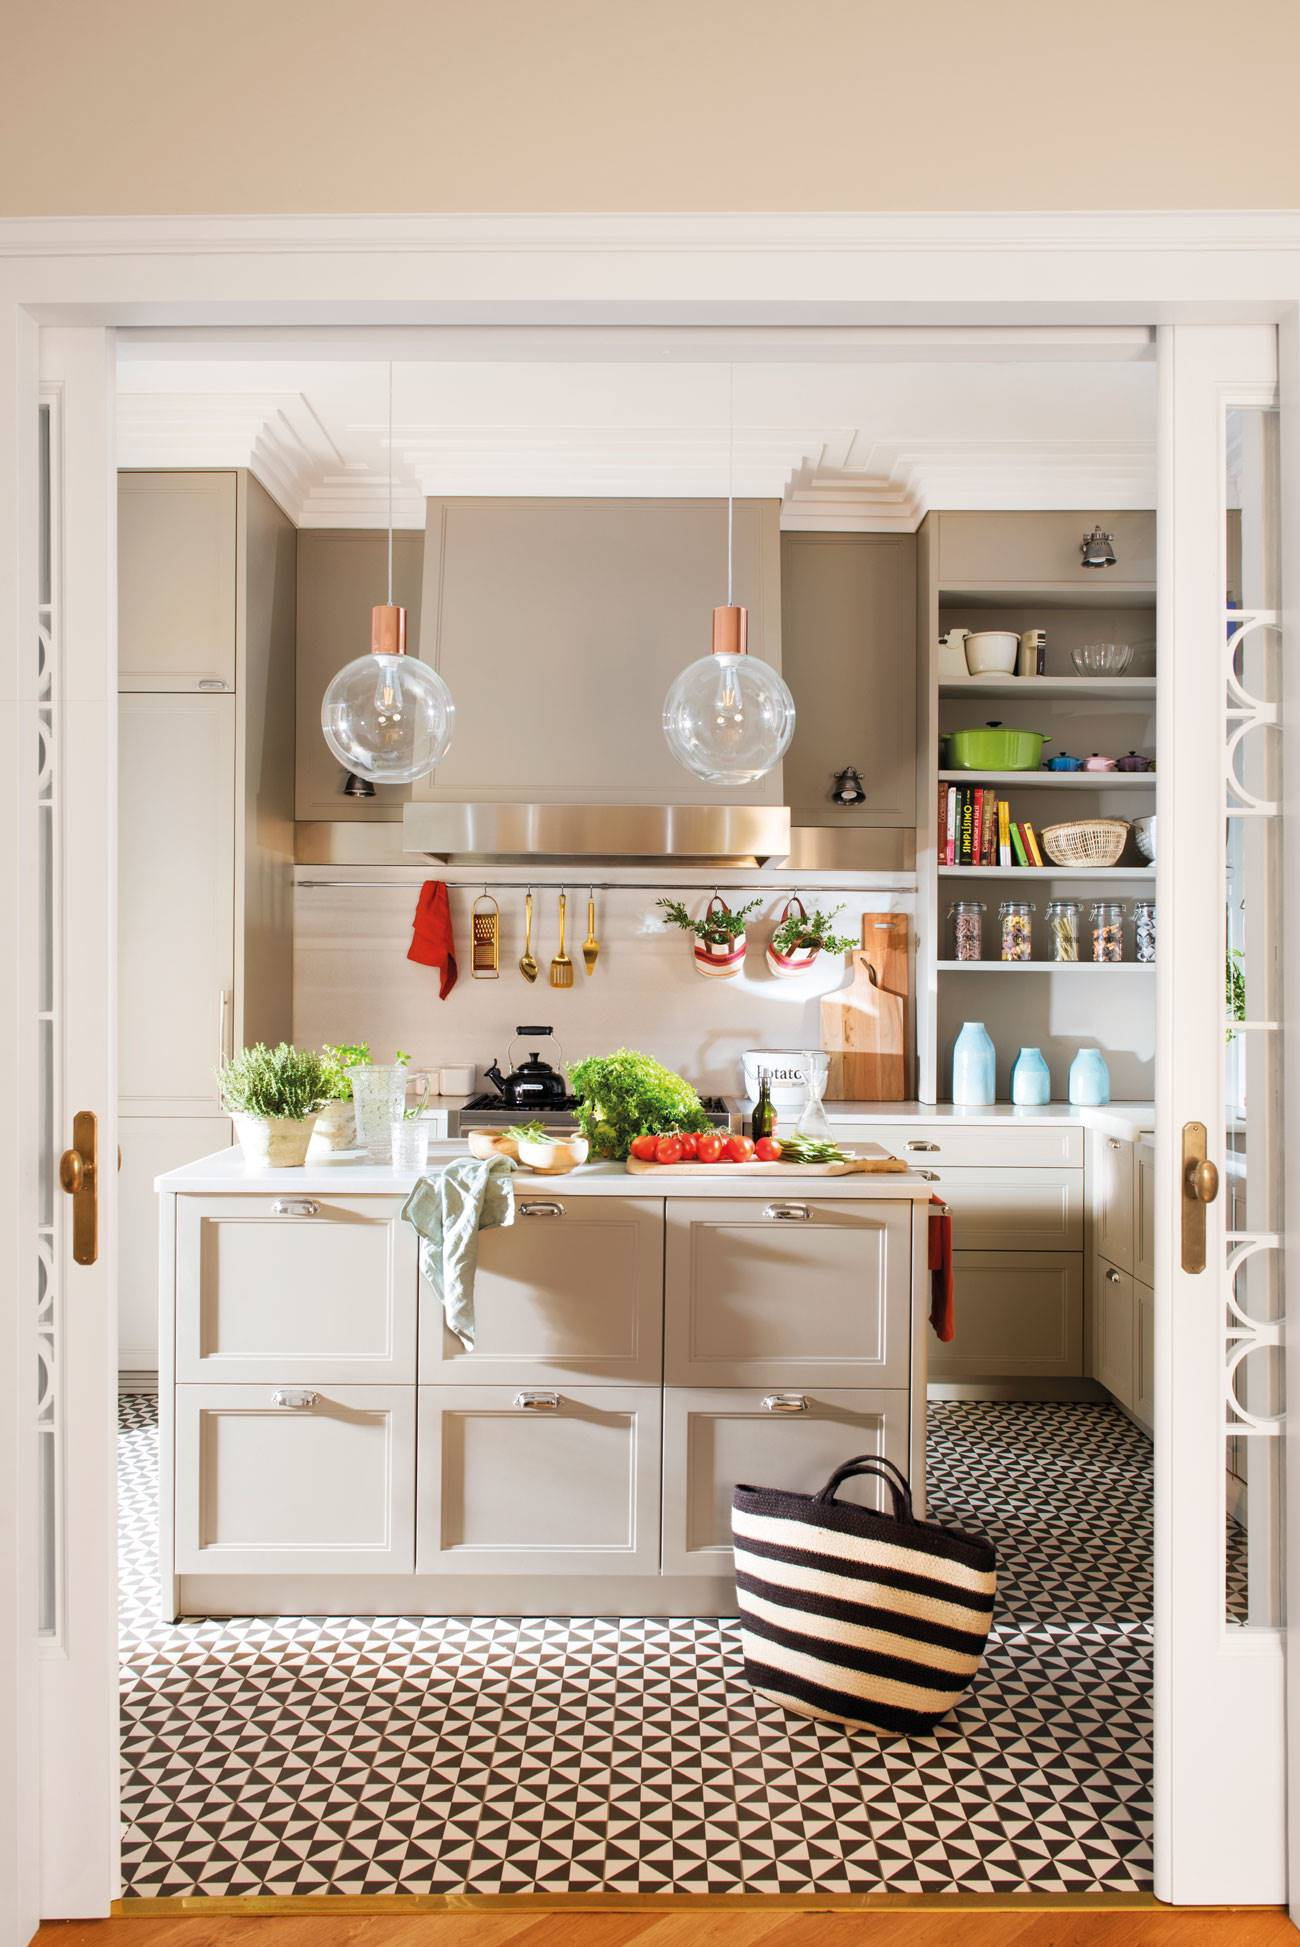 classic-chic-kitchen 484162. Up & Down